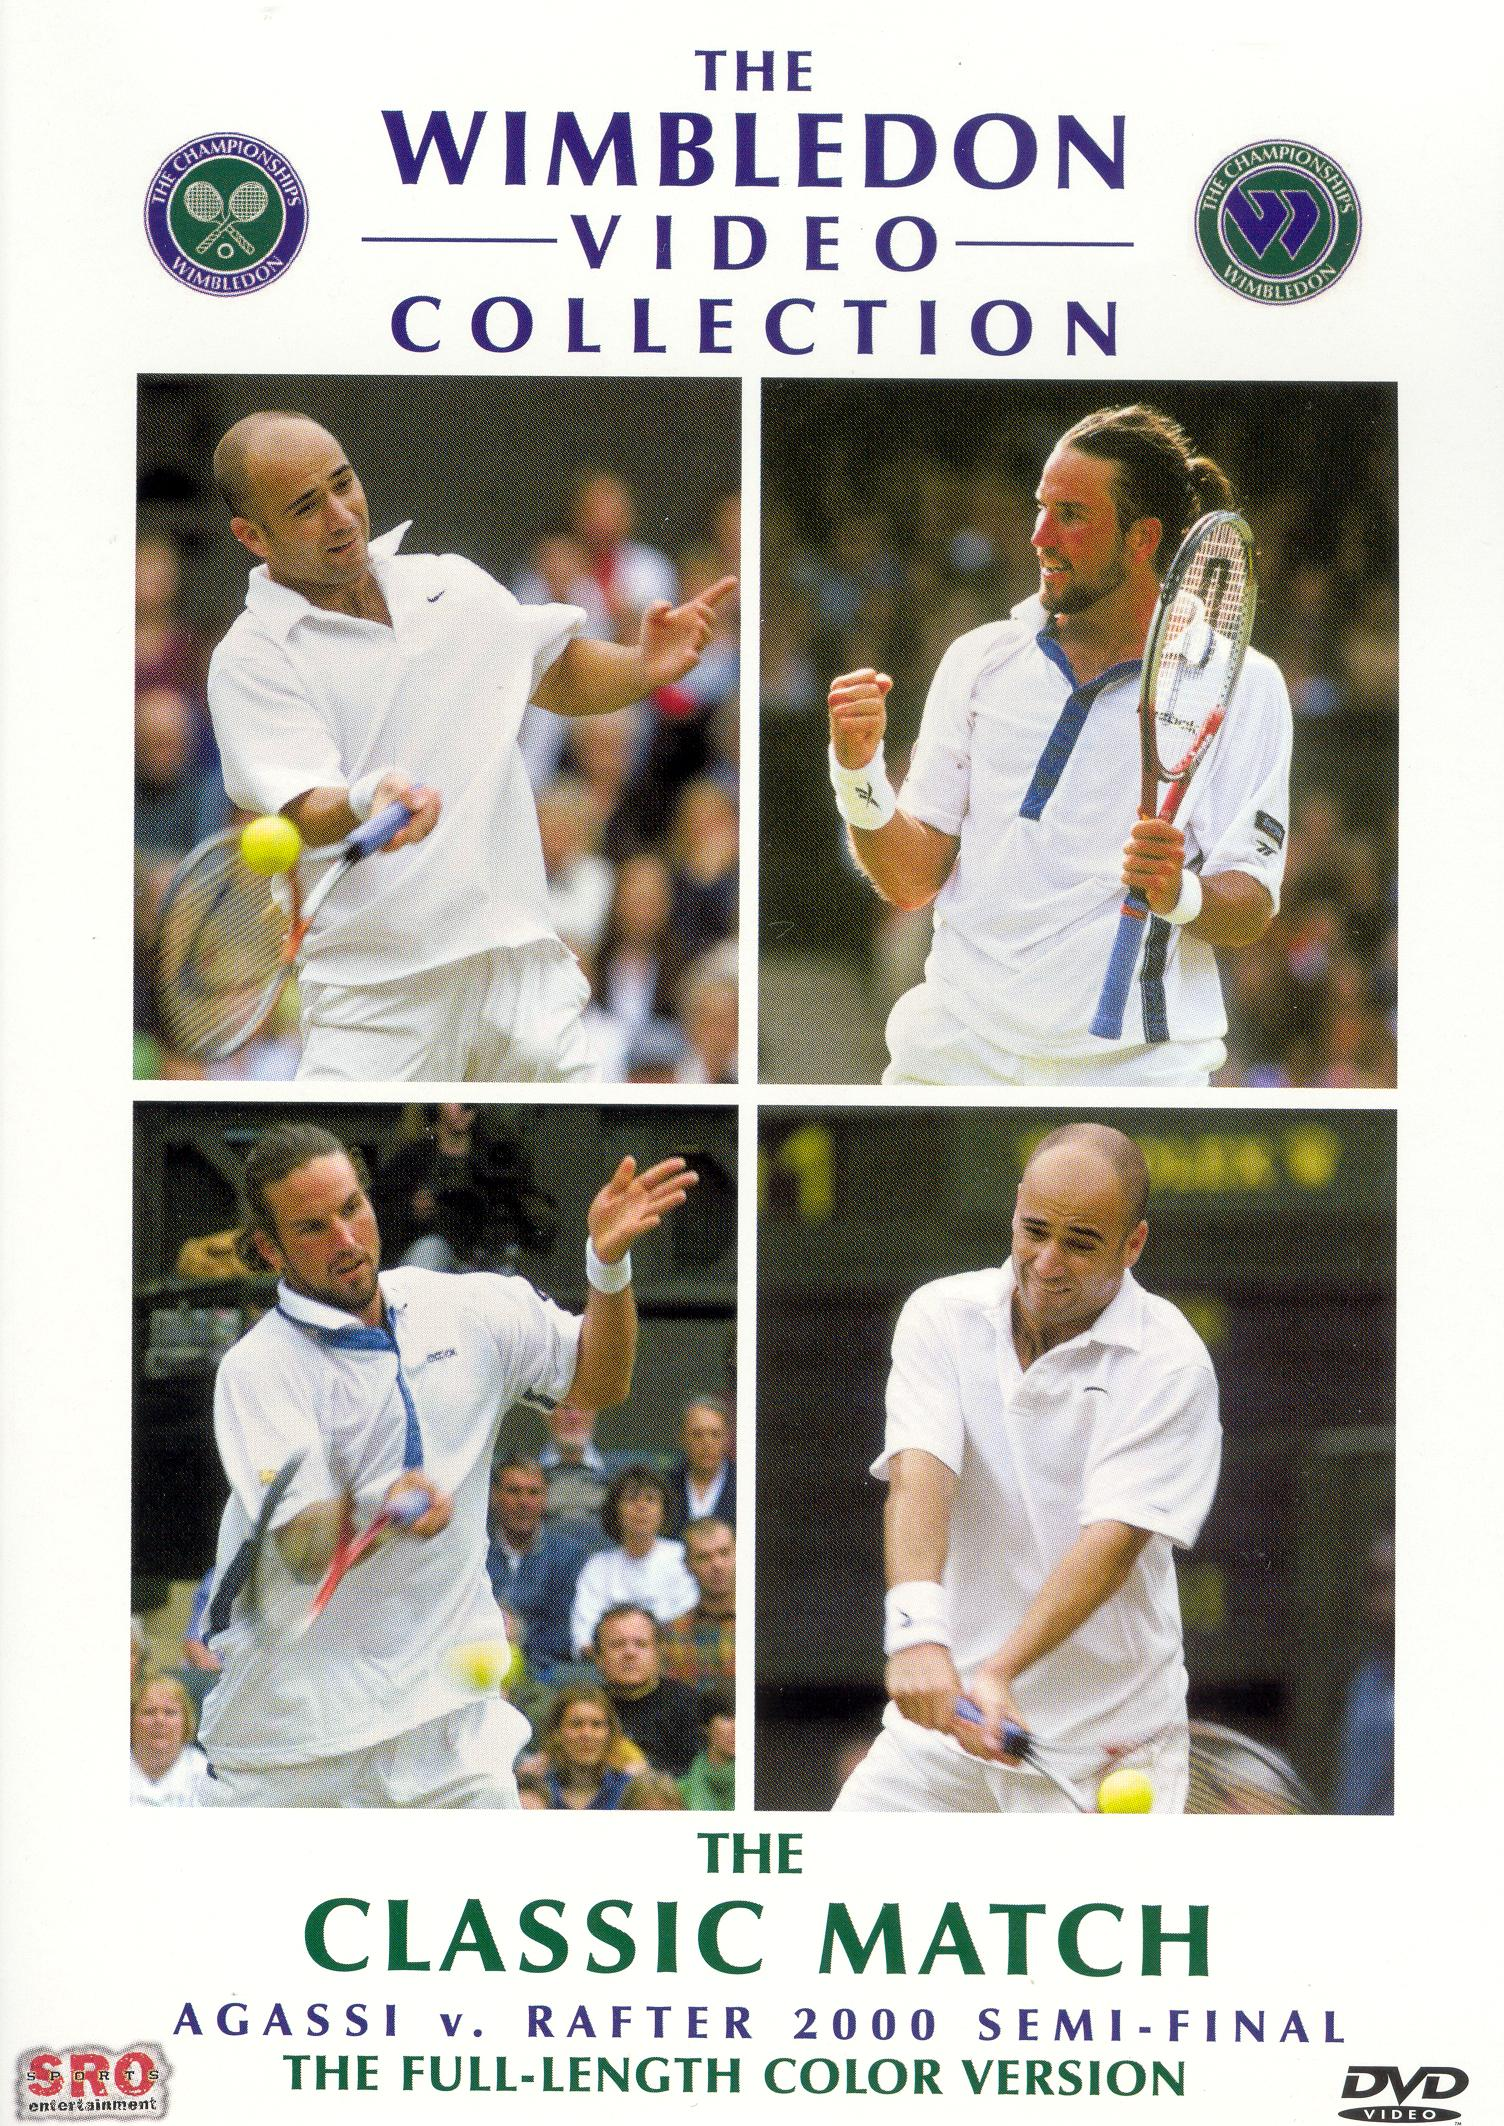 The Wimbledon Video Collection: The Classic Match - Agassi v. Rafter 2000 Semi-Final